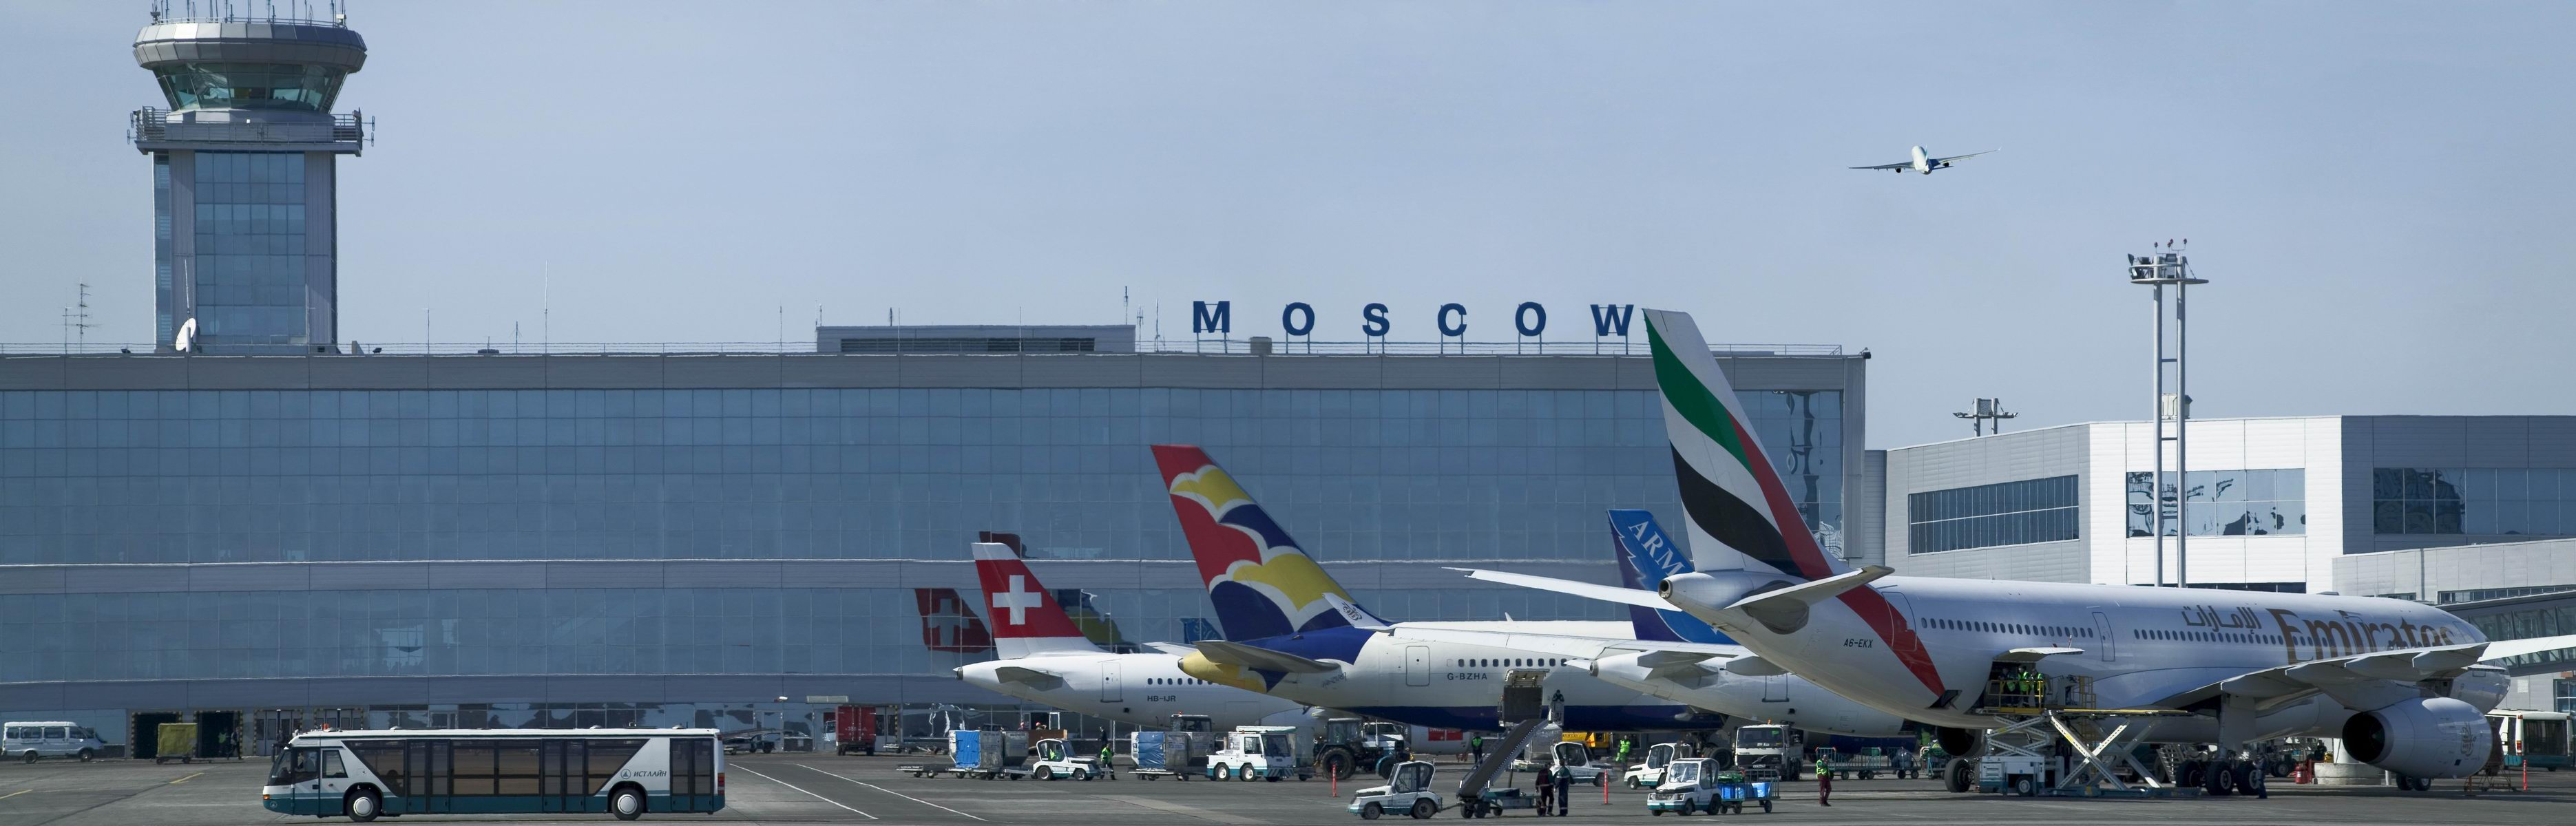 domodedovo international airport